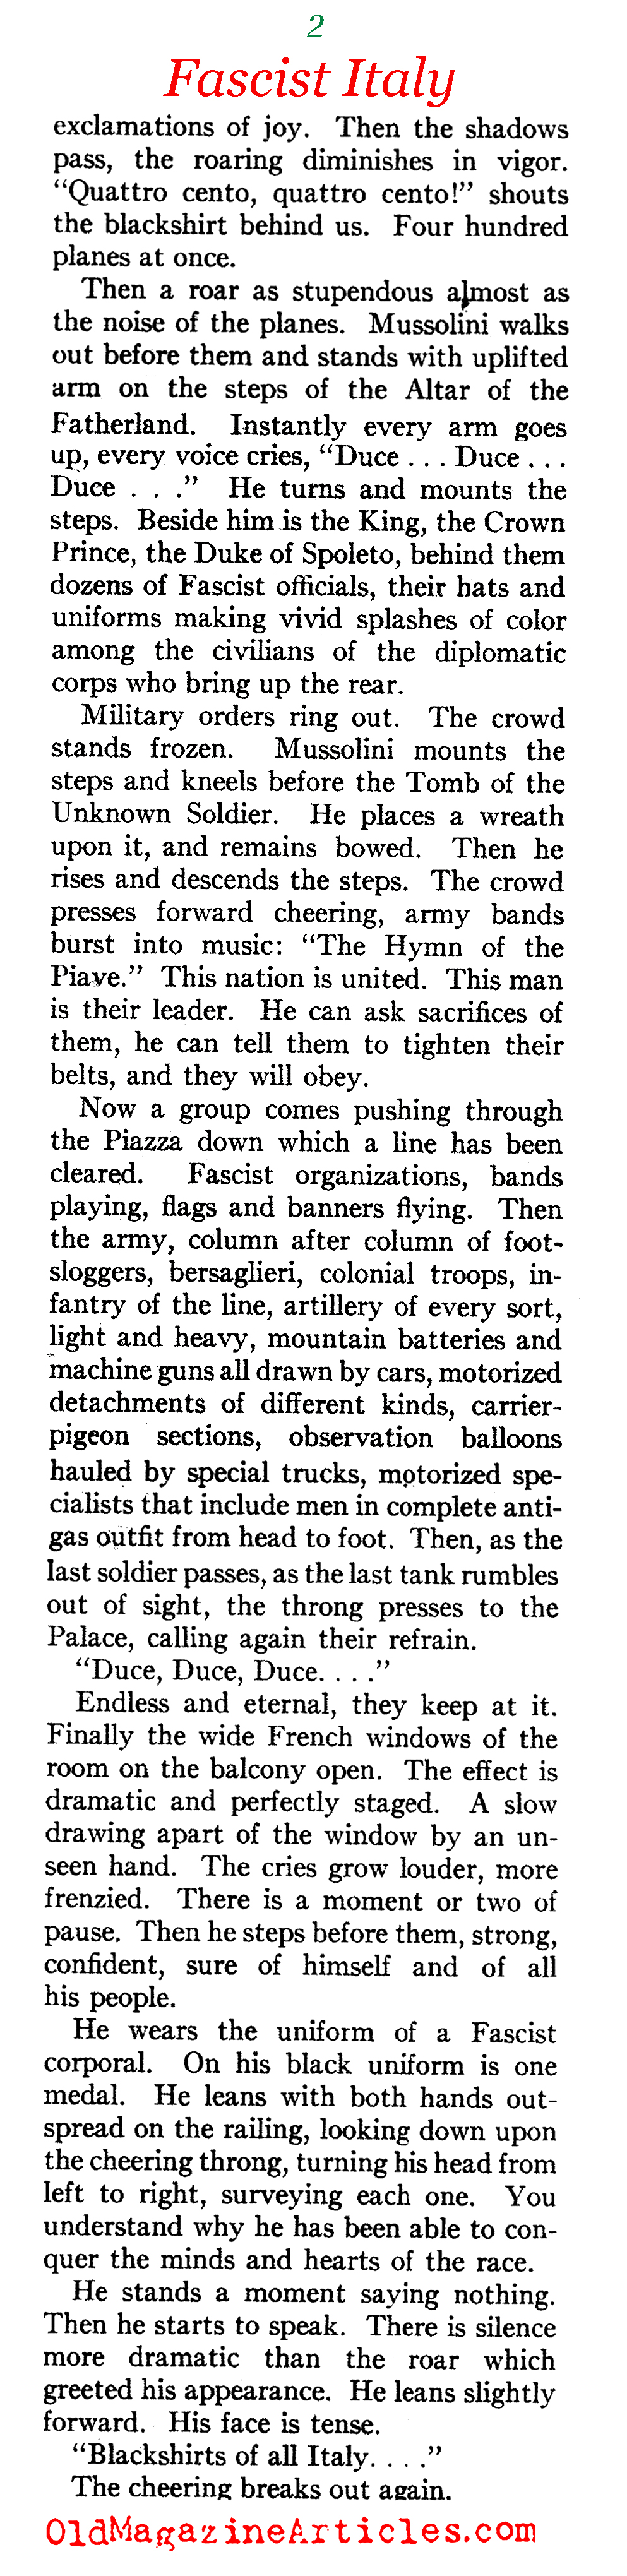 Armistice Day Mussolini Style (American Legion Monthly, 1936)